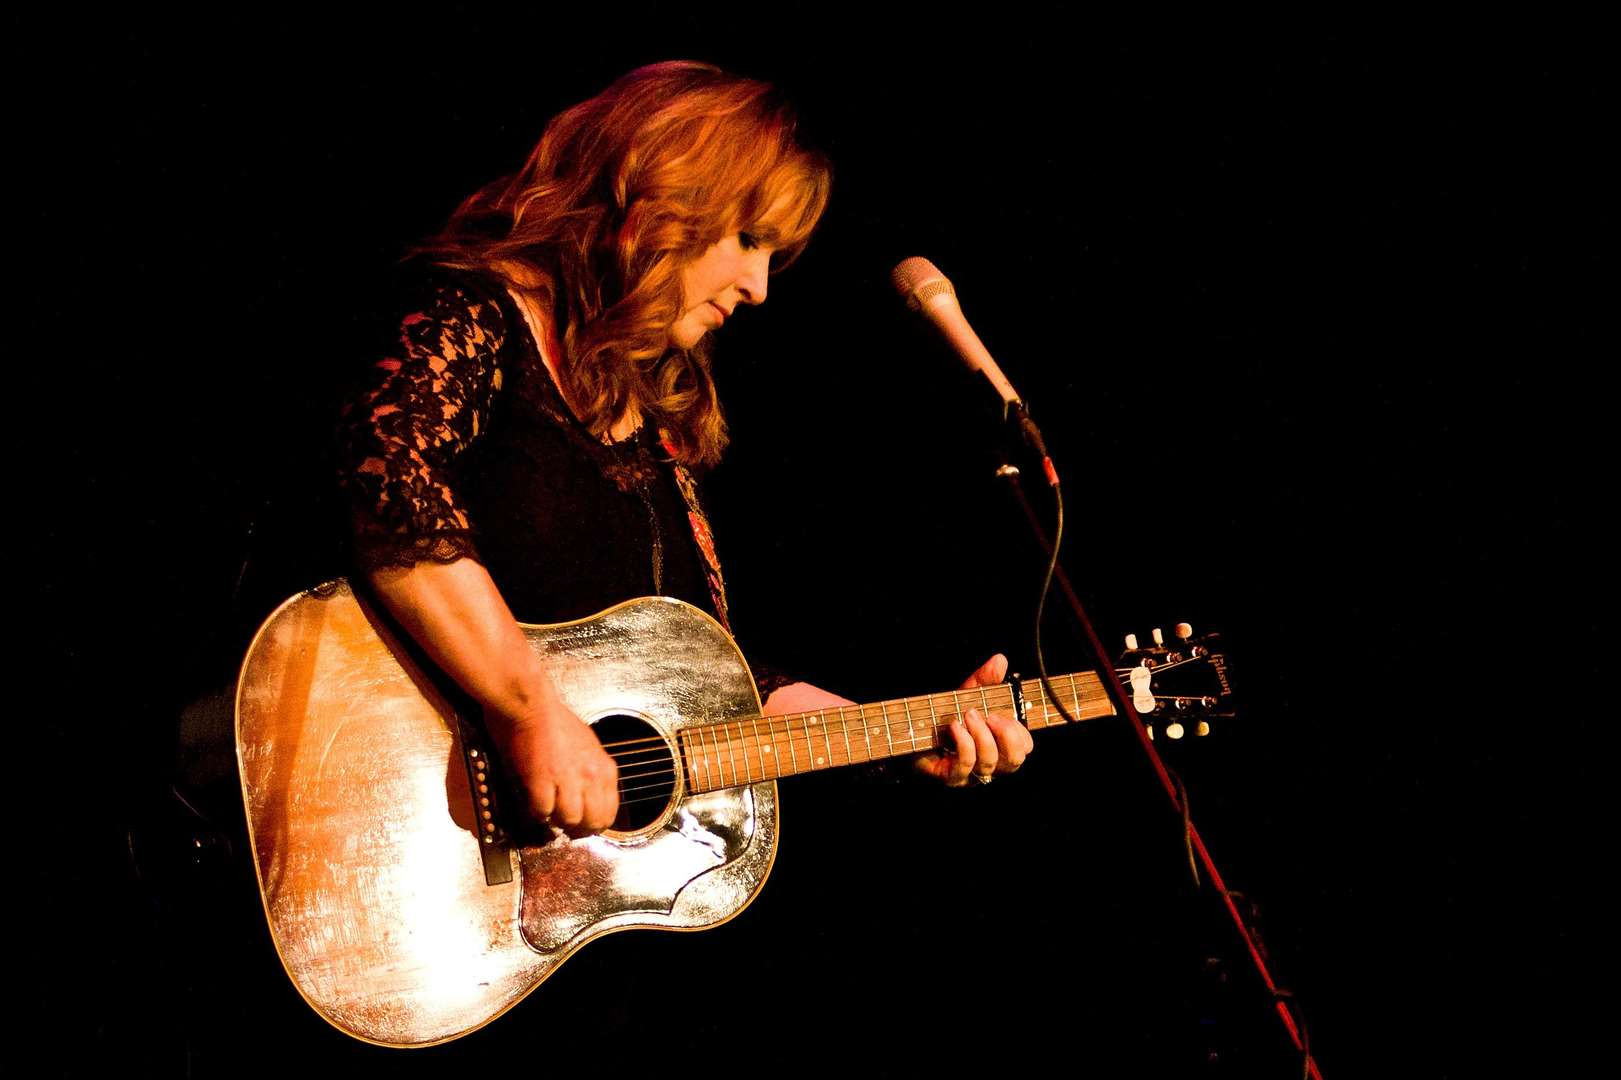 Nashville singer Gretchen Peters will be performing.